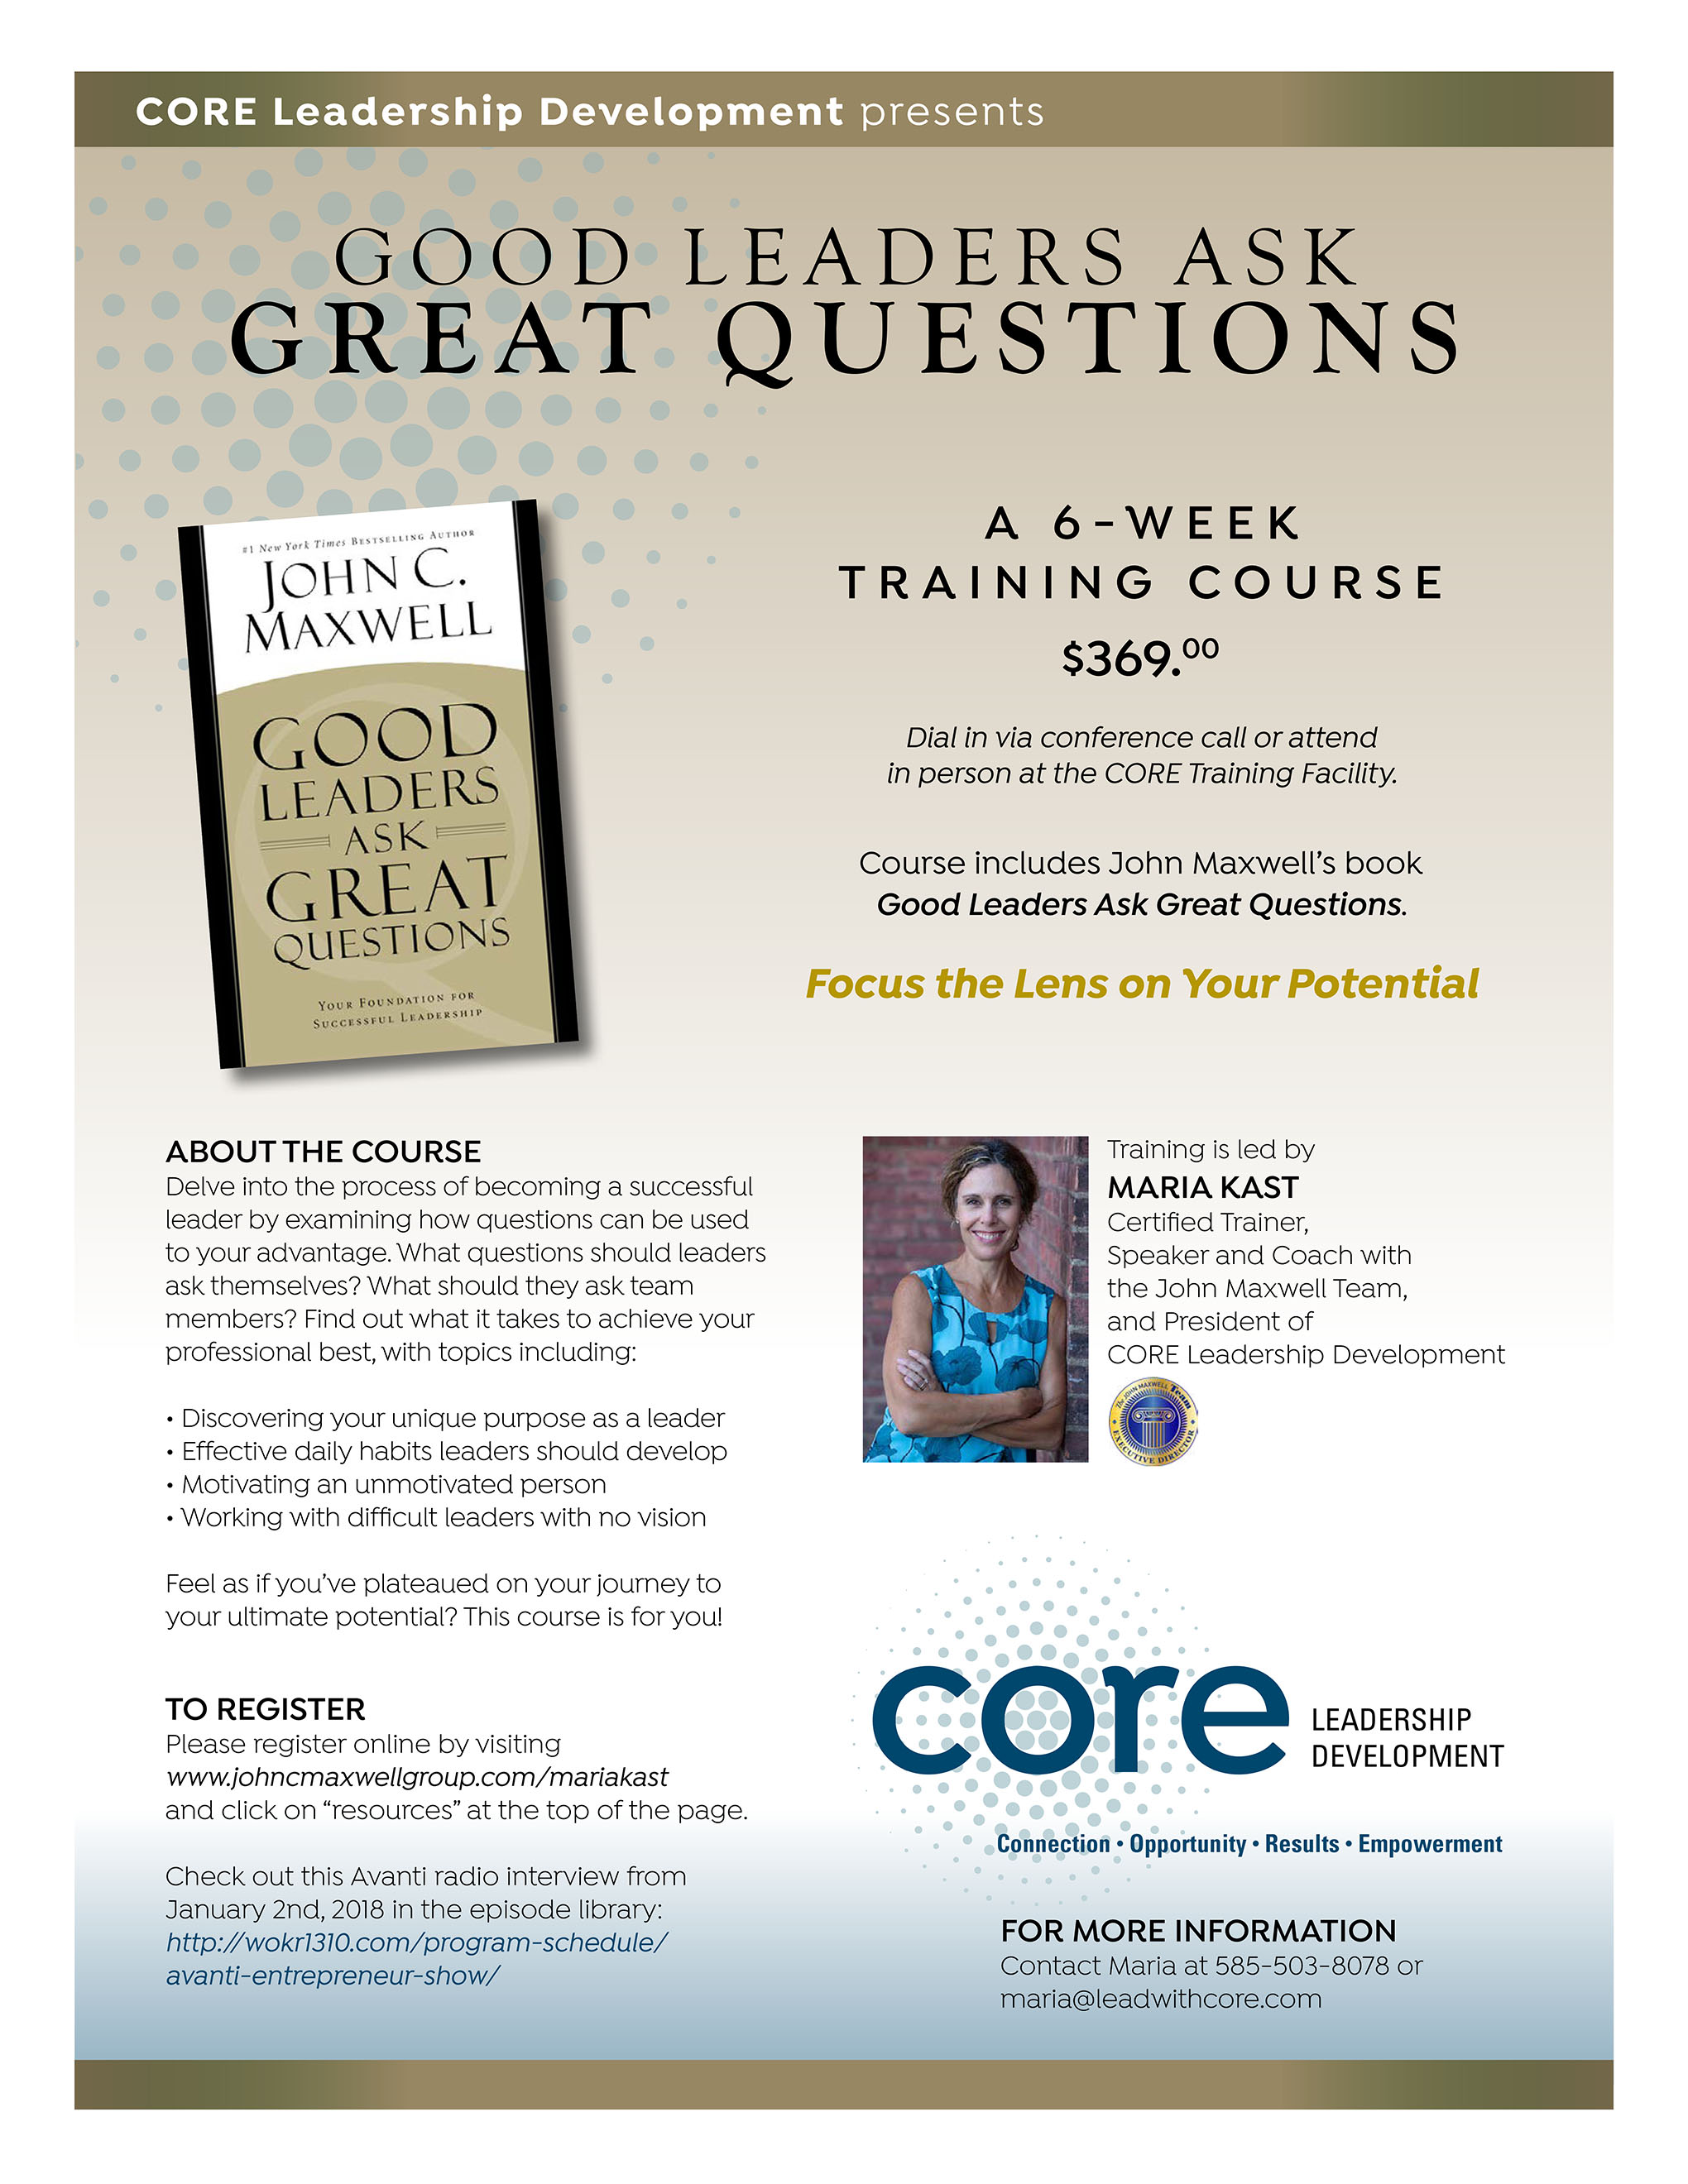 Good Leaders Ask Great Questions CORE Leadership Development